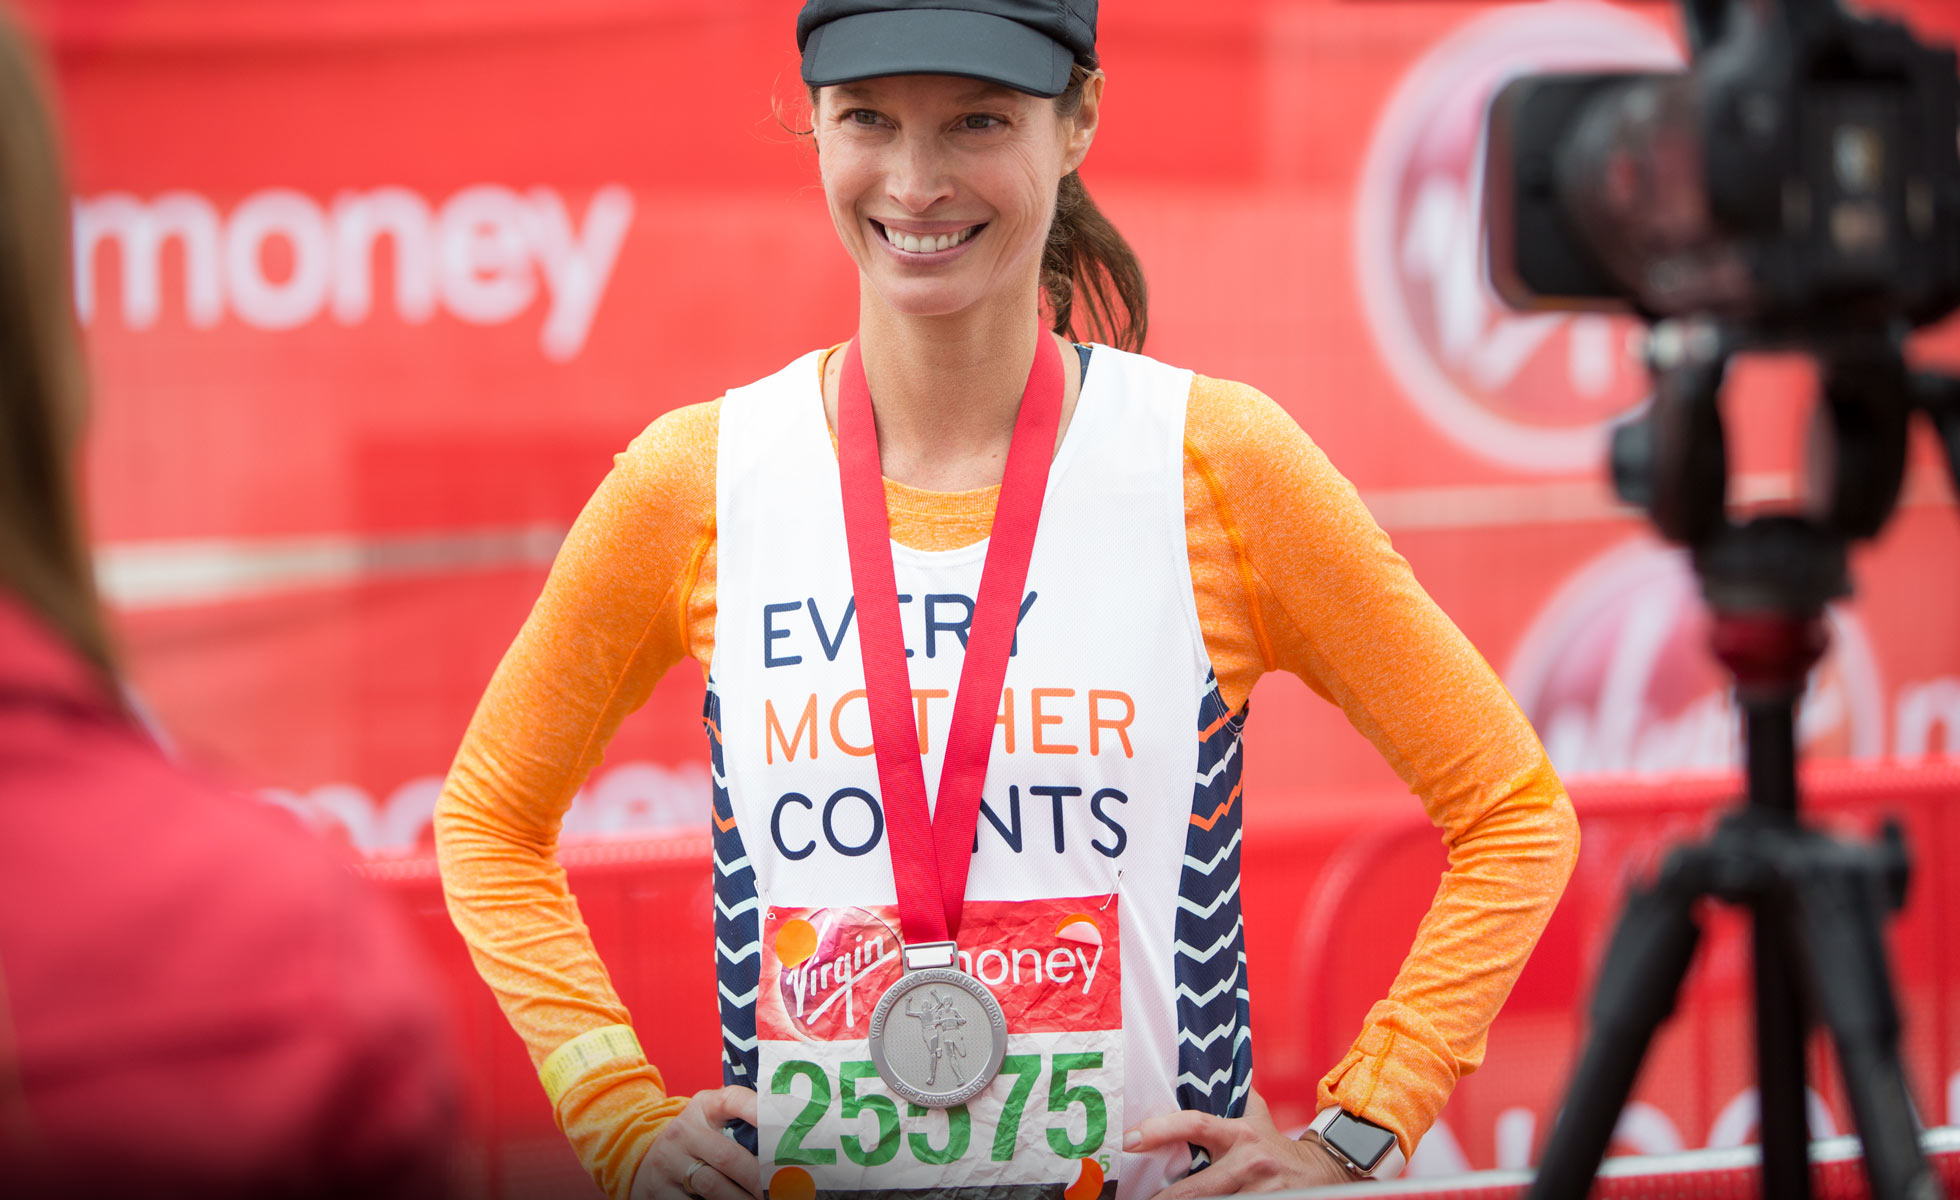 Christy Turlington Burns com sua medalha da maratona